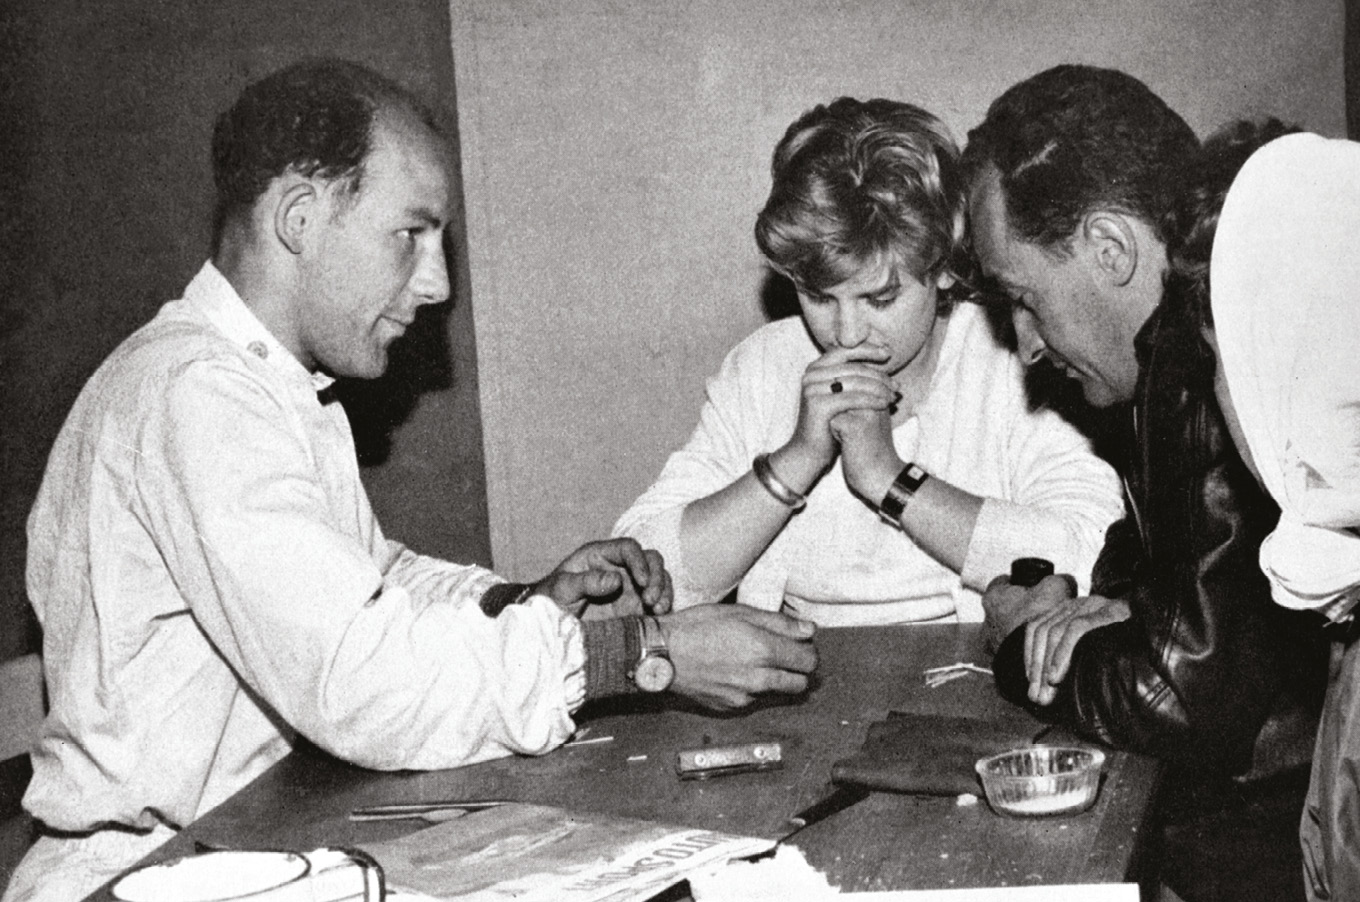 Le Mans 1959: Moss plays liar dice with Valerie Pirie and French businessman and racer François Picard (right) while awaiting his stint